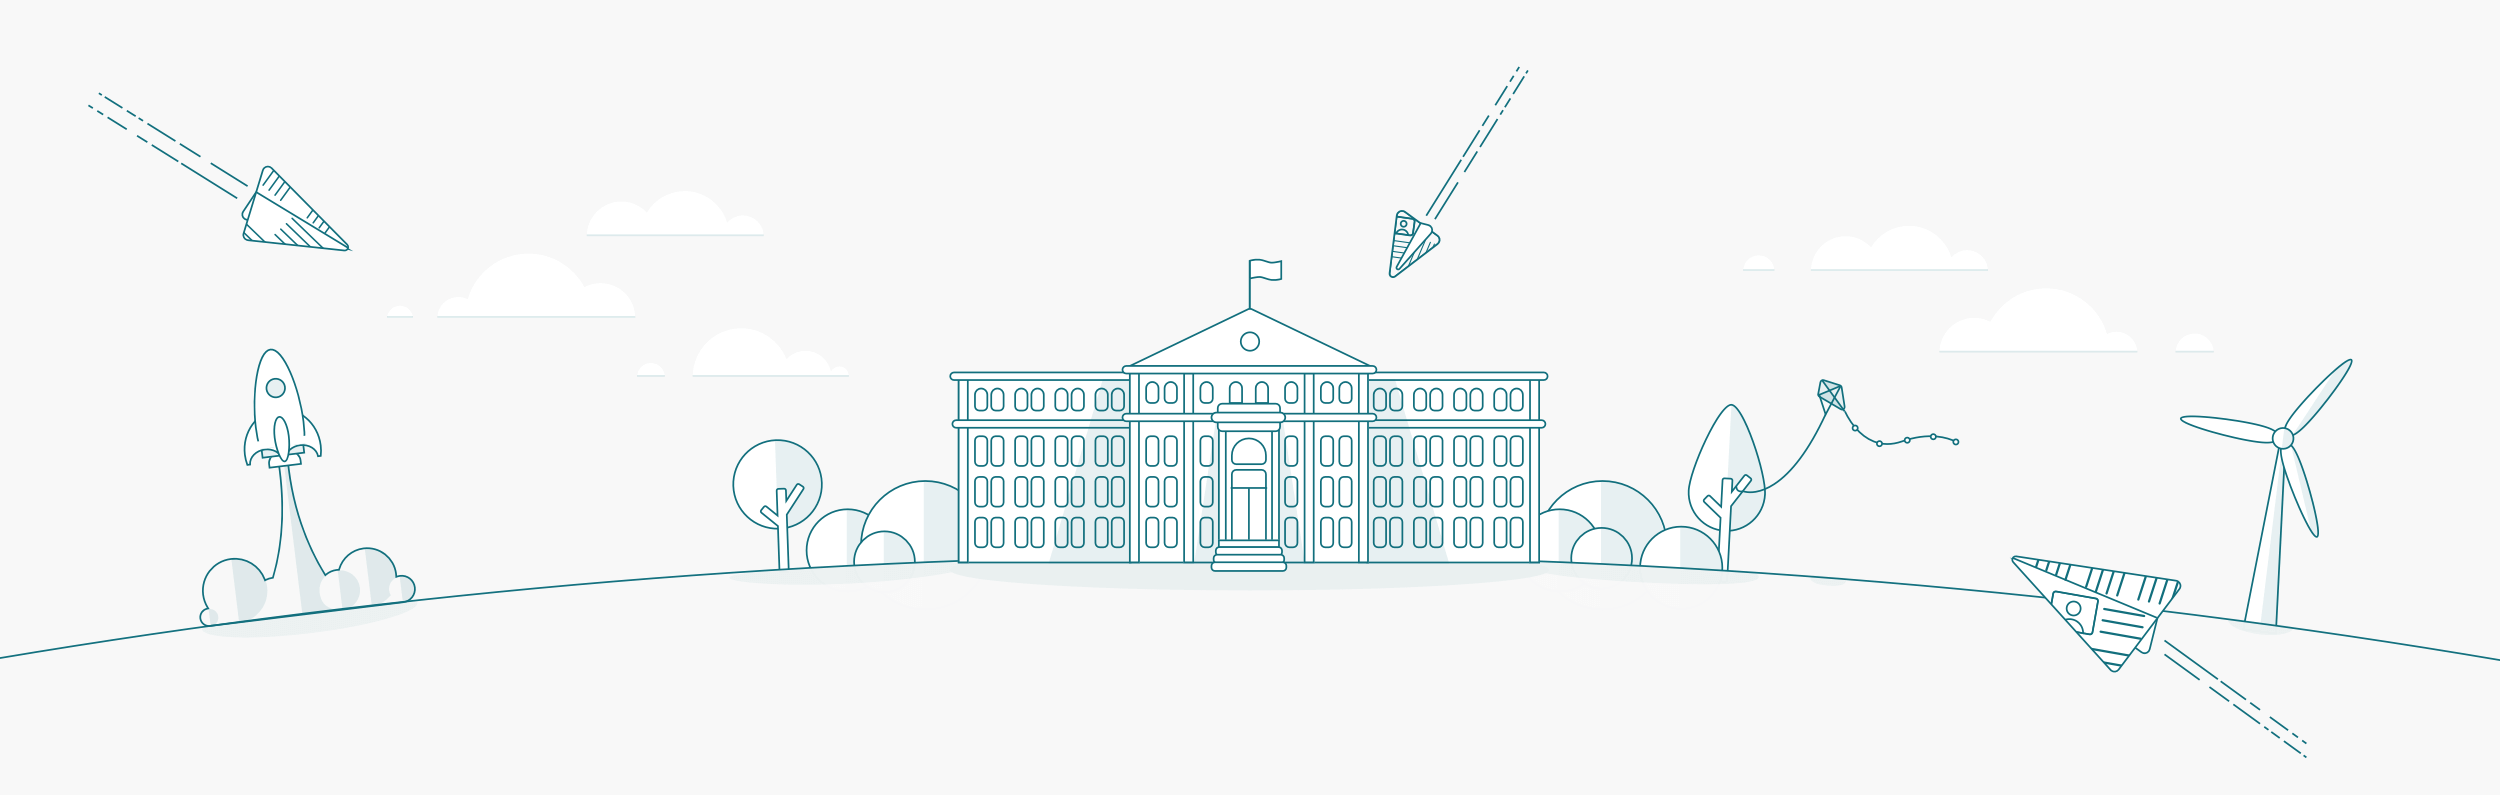 Illustration_university